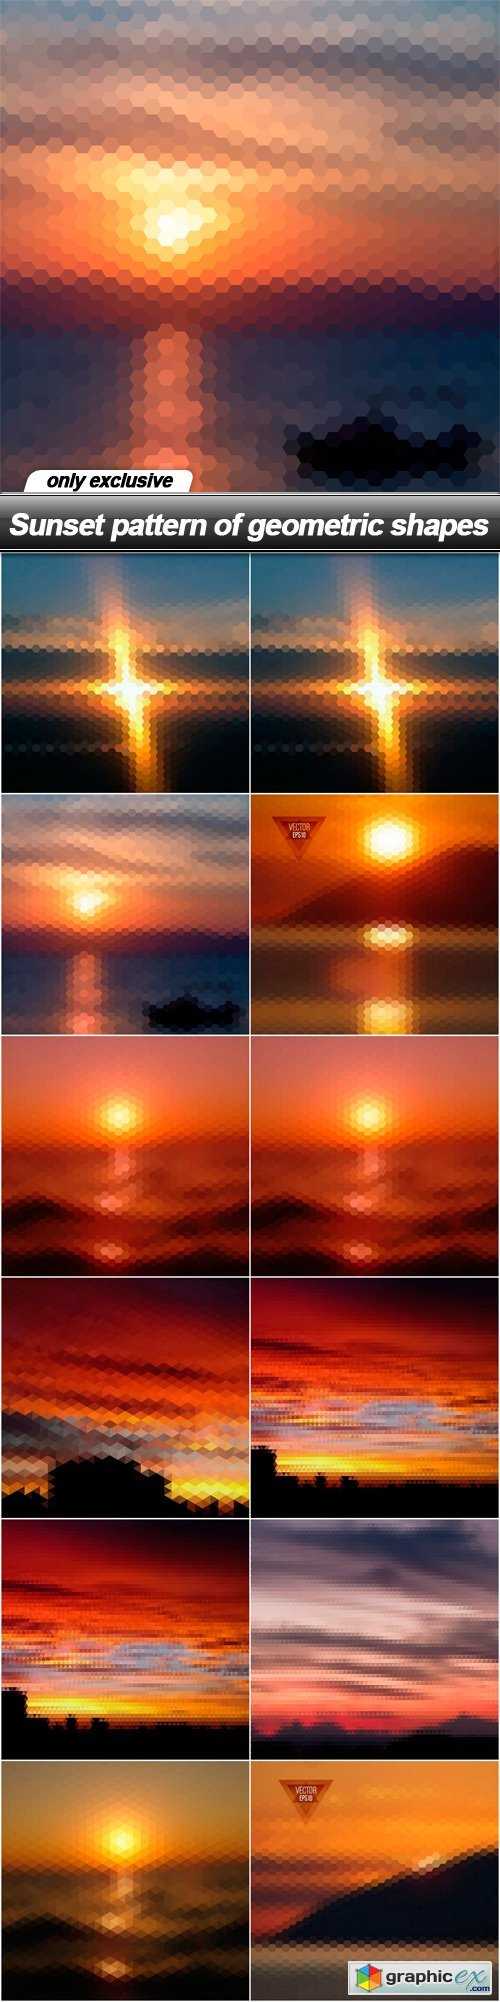 Sunset pattern of geometric shapes - 13 EPS